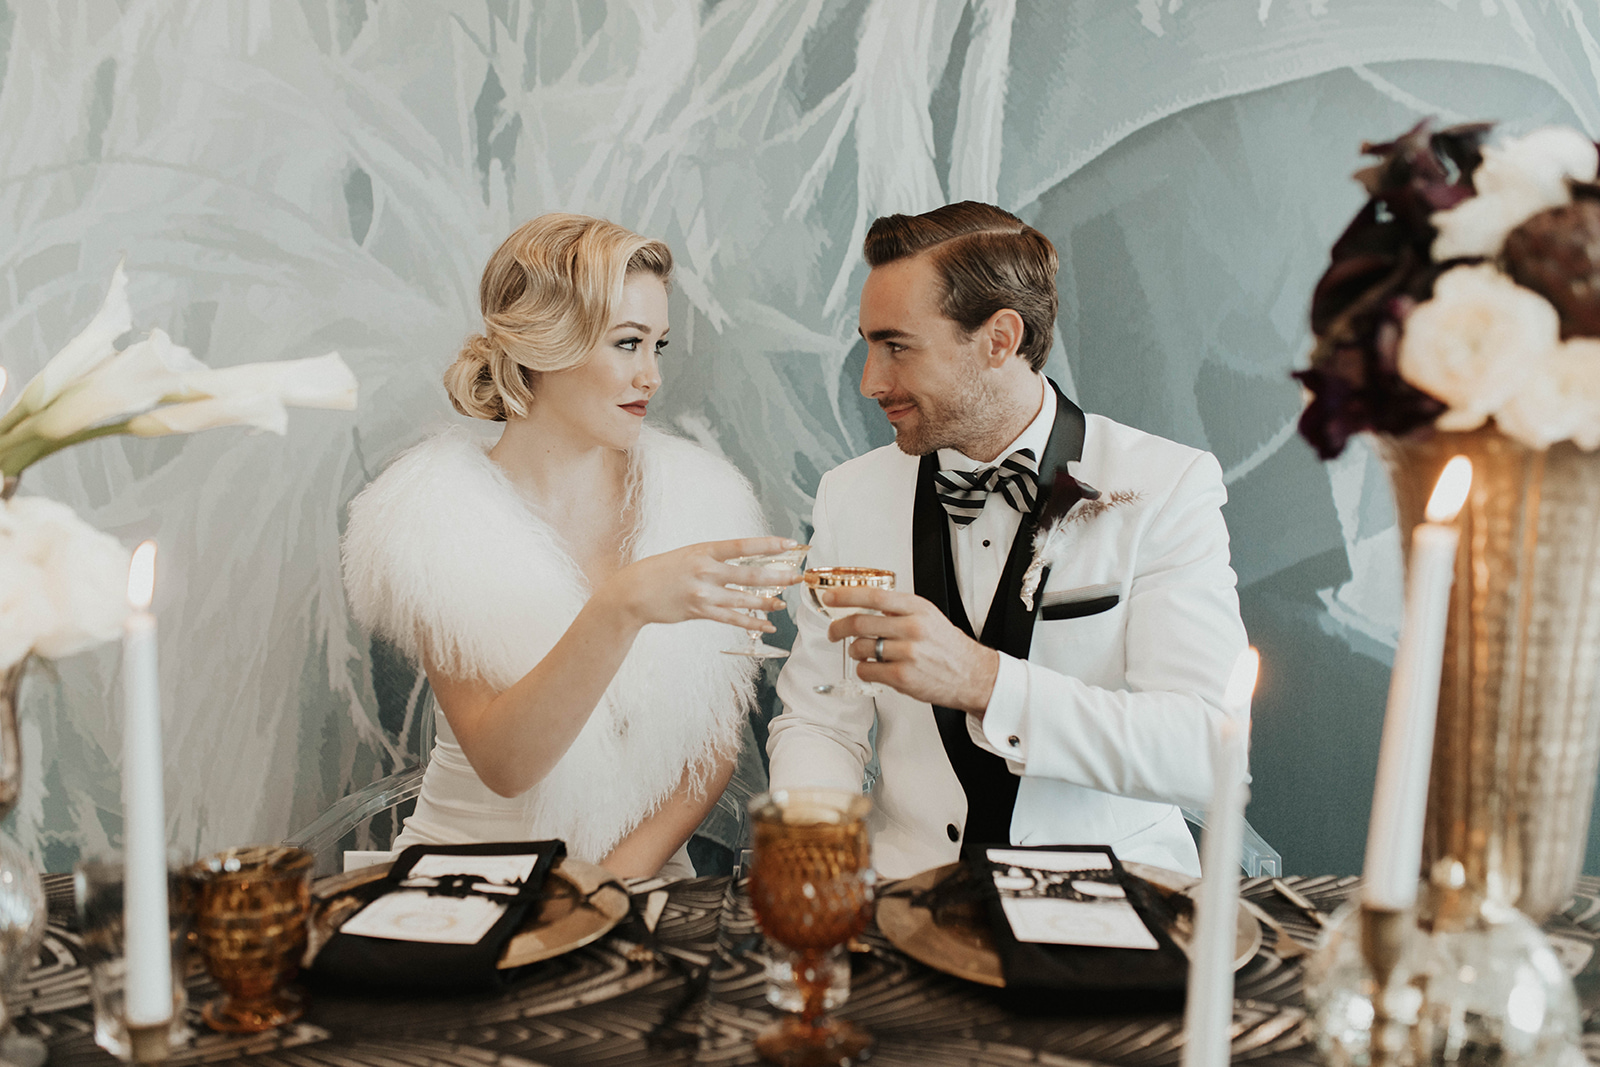 NEW YEAR'S EVE WEDDING INSPIRED BY THE GREAT GATSBY